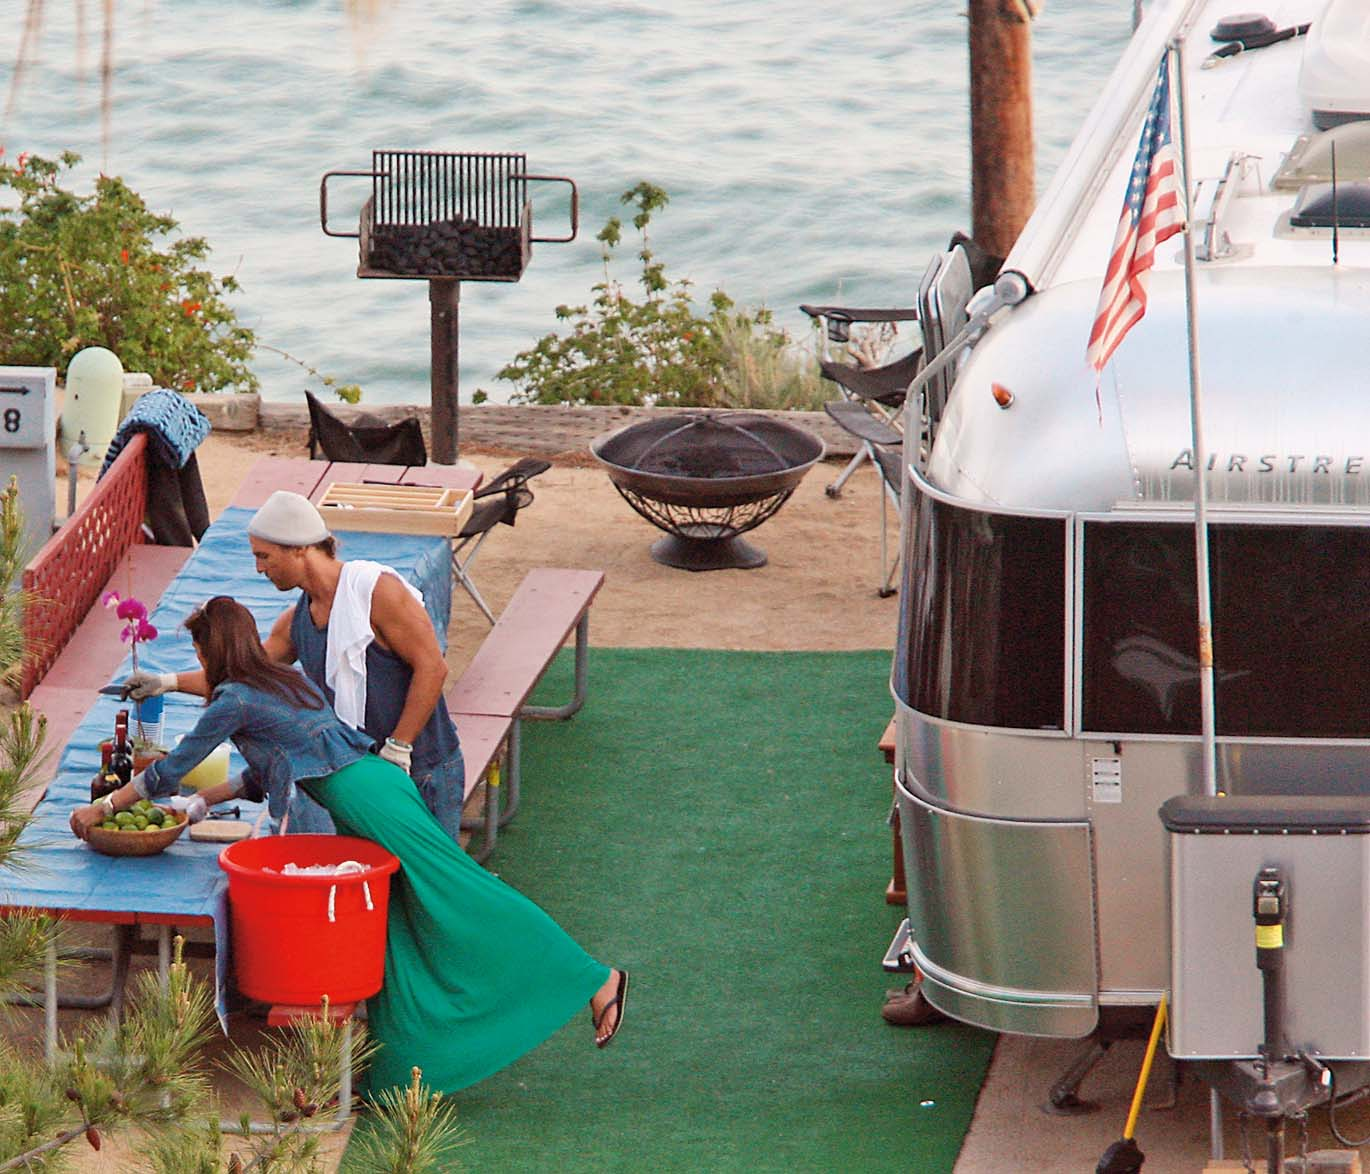 Life's a beach for Matthew McConaughey! Looks like the actor's got a new lady and is ready to celebrate! The new couple spend the morning setting up for a little bbq at Matt's Airstream mobile home in the Malibu Trailer Park. Not jaded by fame and fortune, the down-to-earth McConaughey shows off his muscles for the mystery lady, unloading his truck with all the groceries for the party. Looks like love is in the fresh ocean air!    04/14/2007 --- Matthew McConaughey ---  - 310-395-0500 / Sales: Bill Graham - 310-395-0559, Image: 20858906, License: Rights-managed, Restrictions: , Model Release: no, Credit line: FAME PICTURES / Backgrid USA / Profimedia